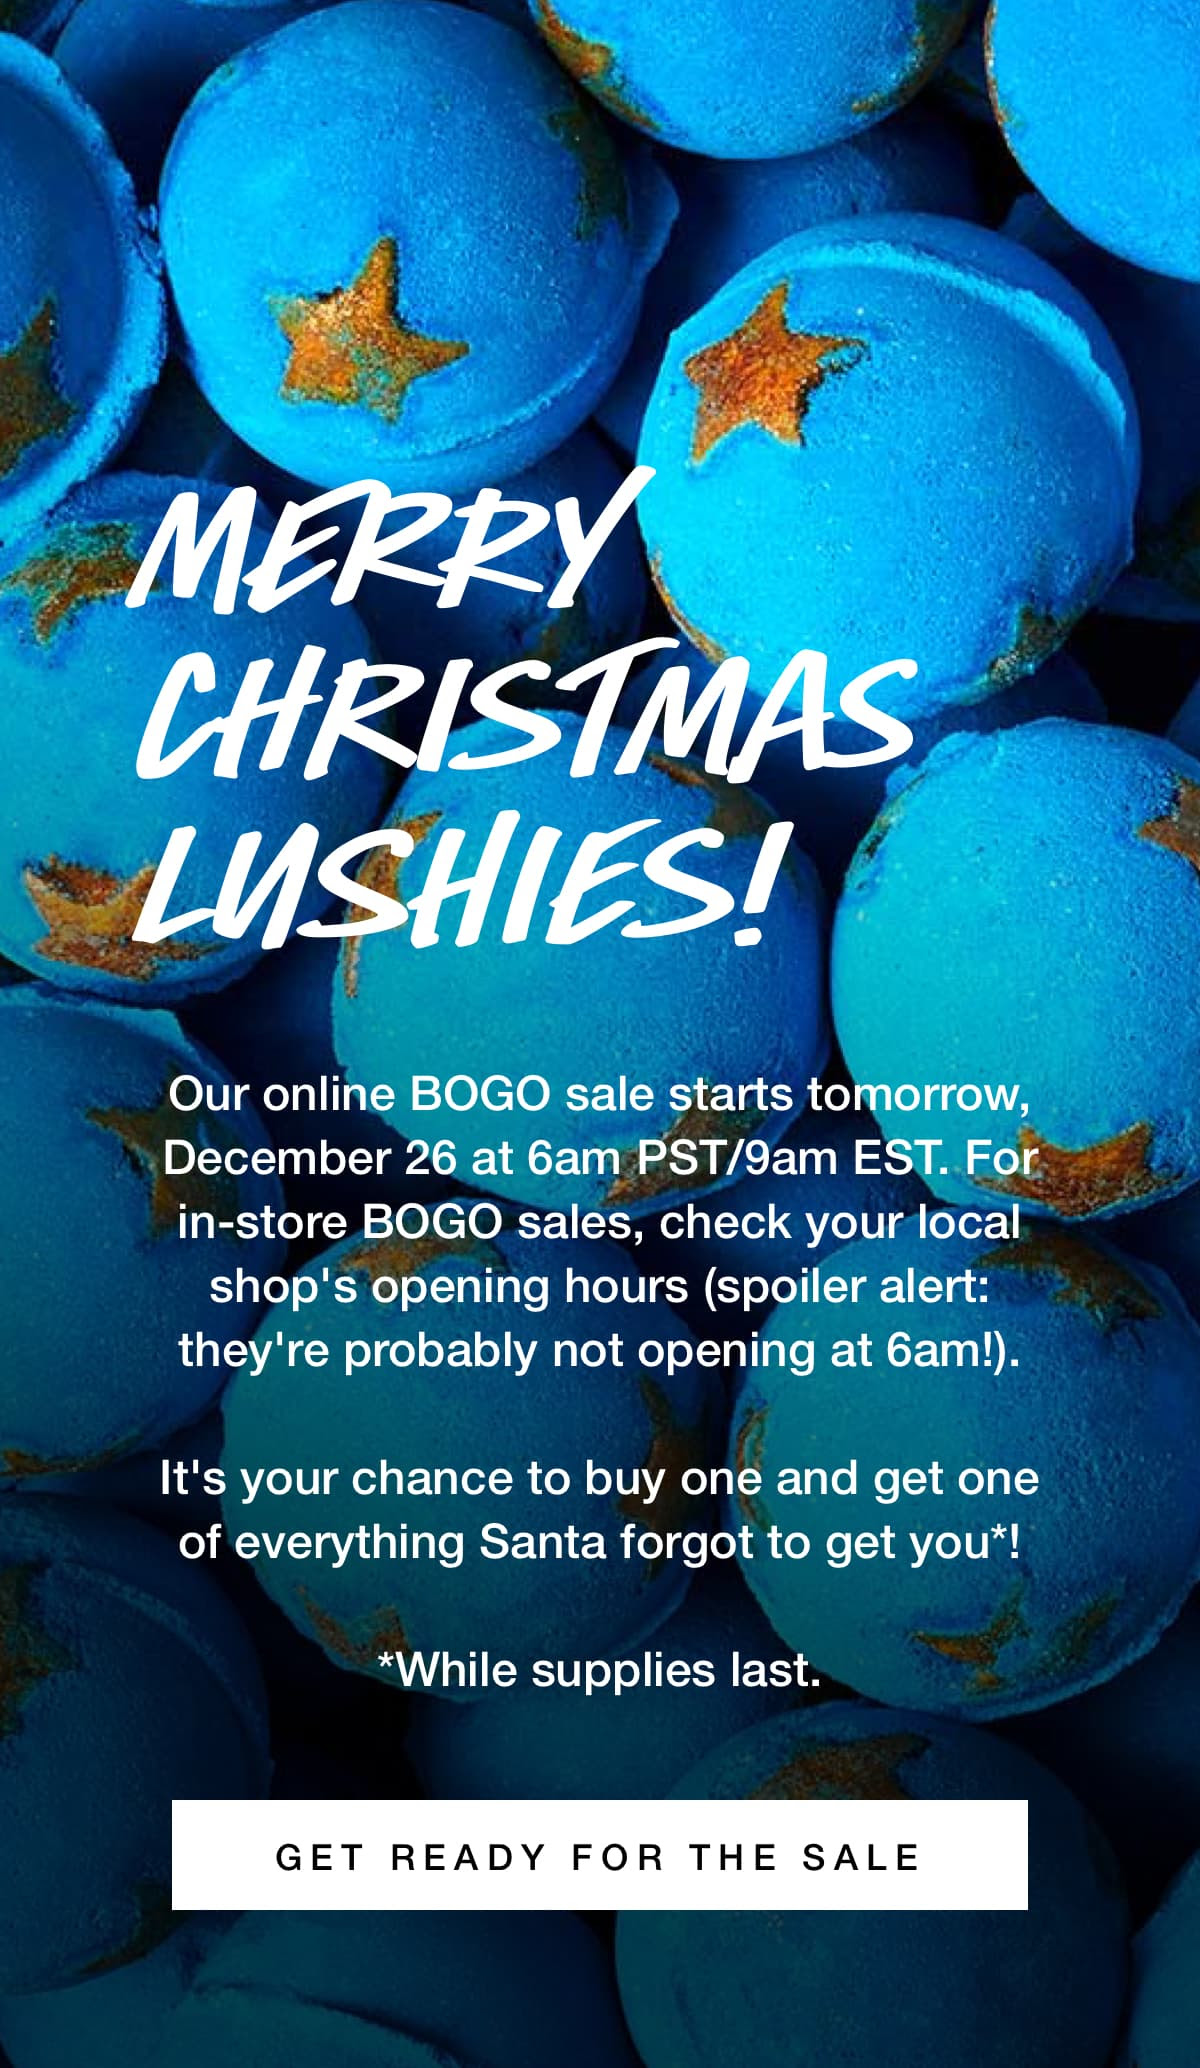 graphic regarding Lush Coupons Printable named LUSH CANADA 2018 BOXING Working day SALE: BOGO; Obtain A person, Take 1